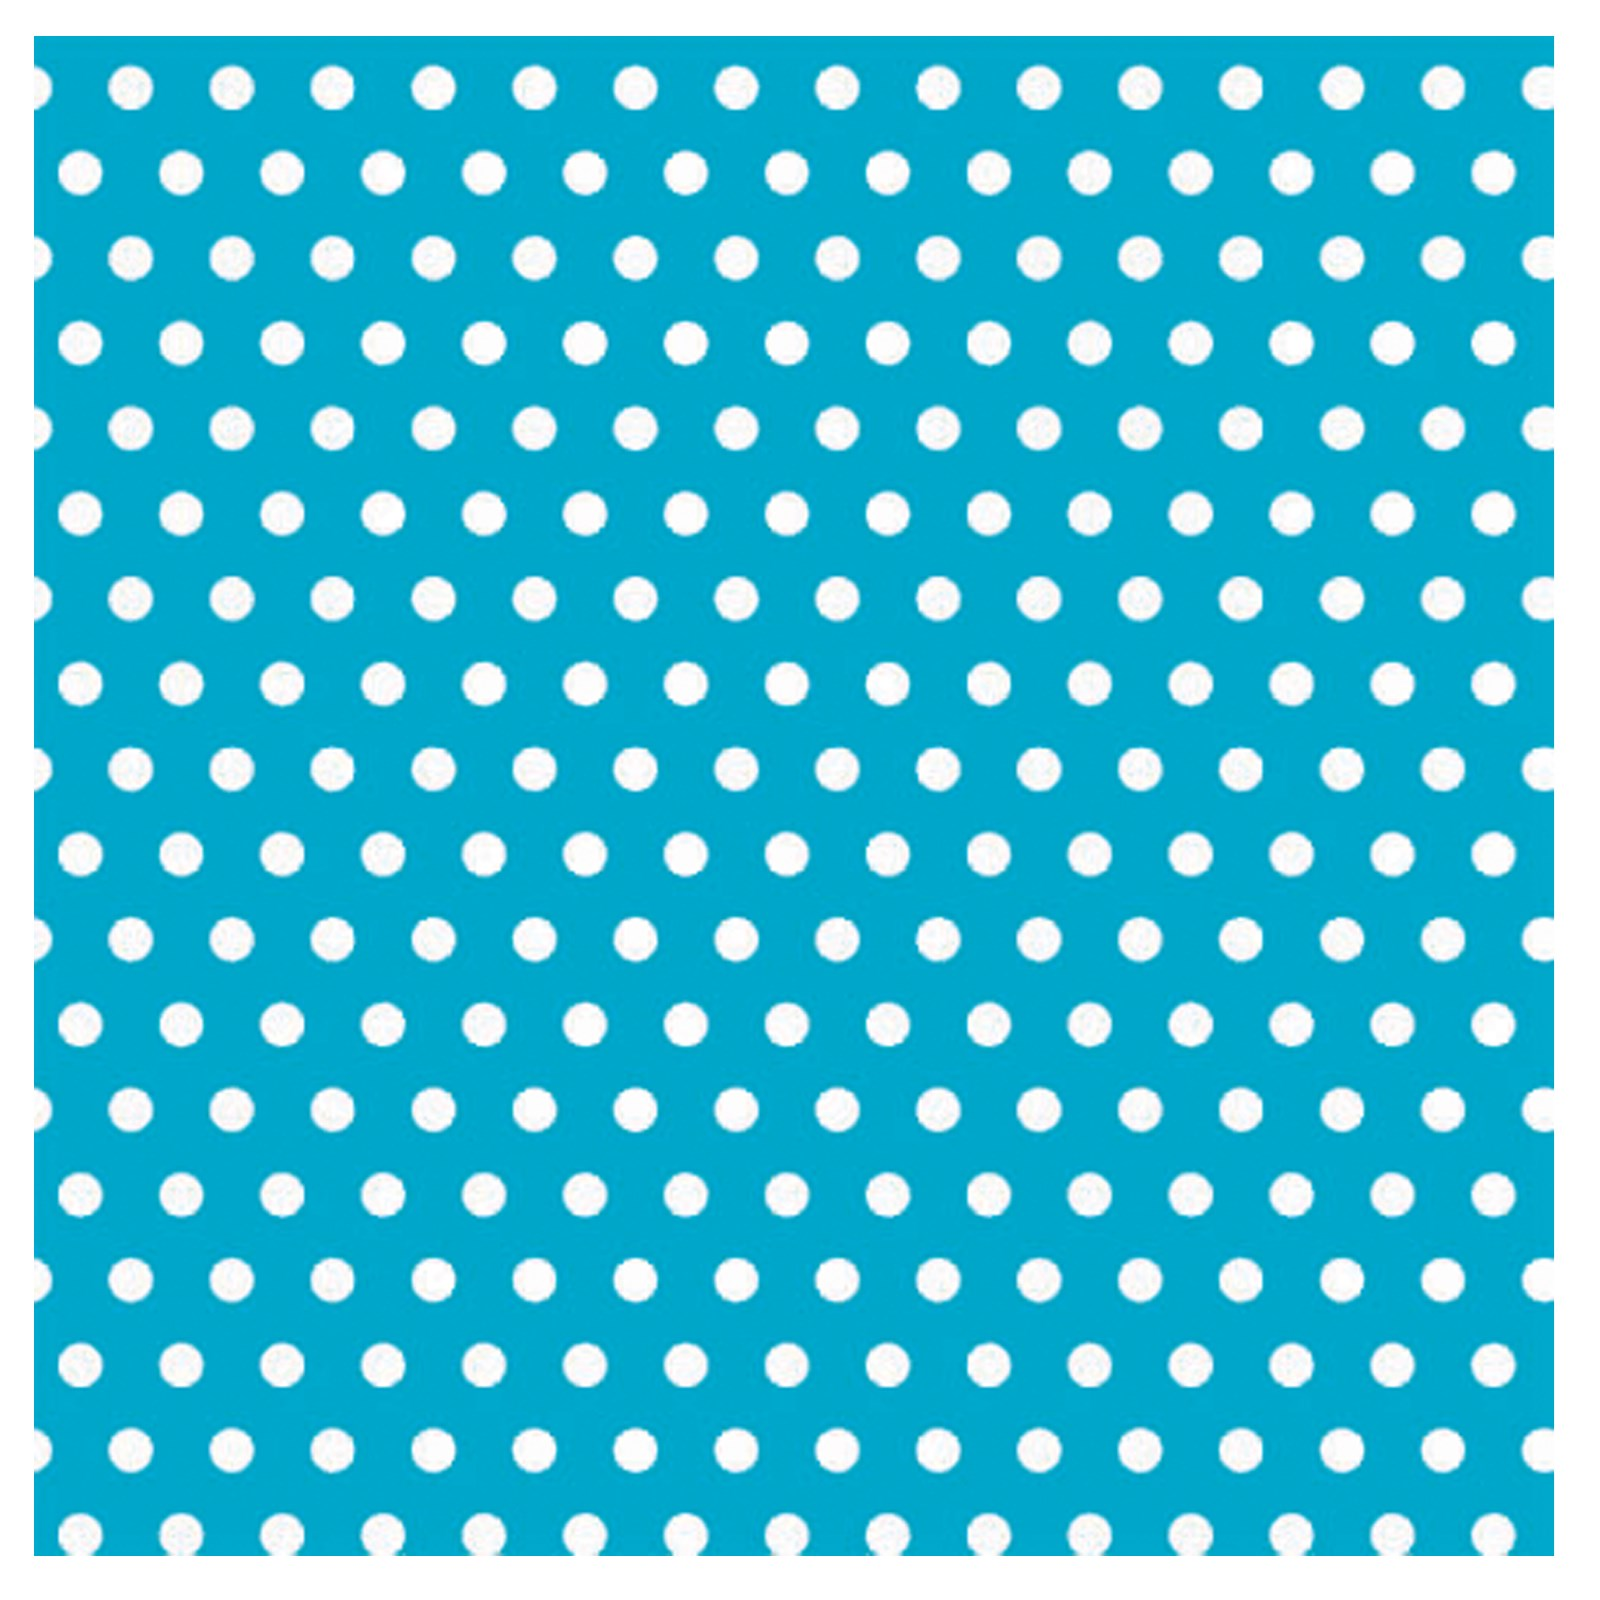 Comic Book Polka Dot Background Images Free Download